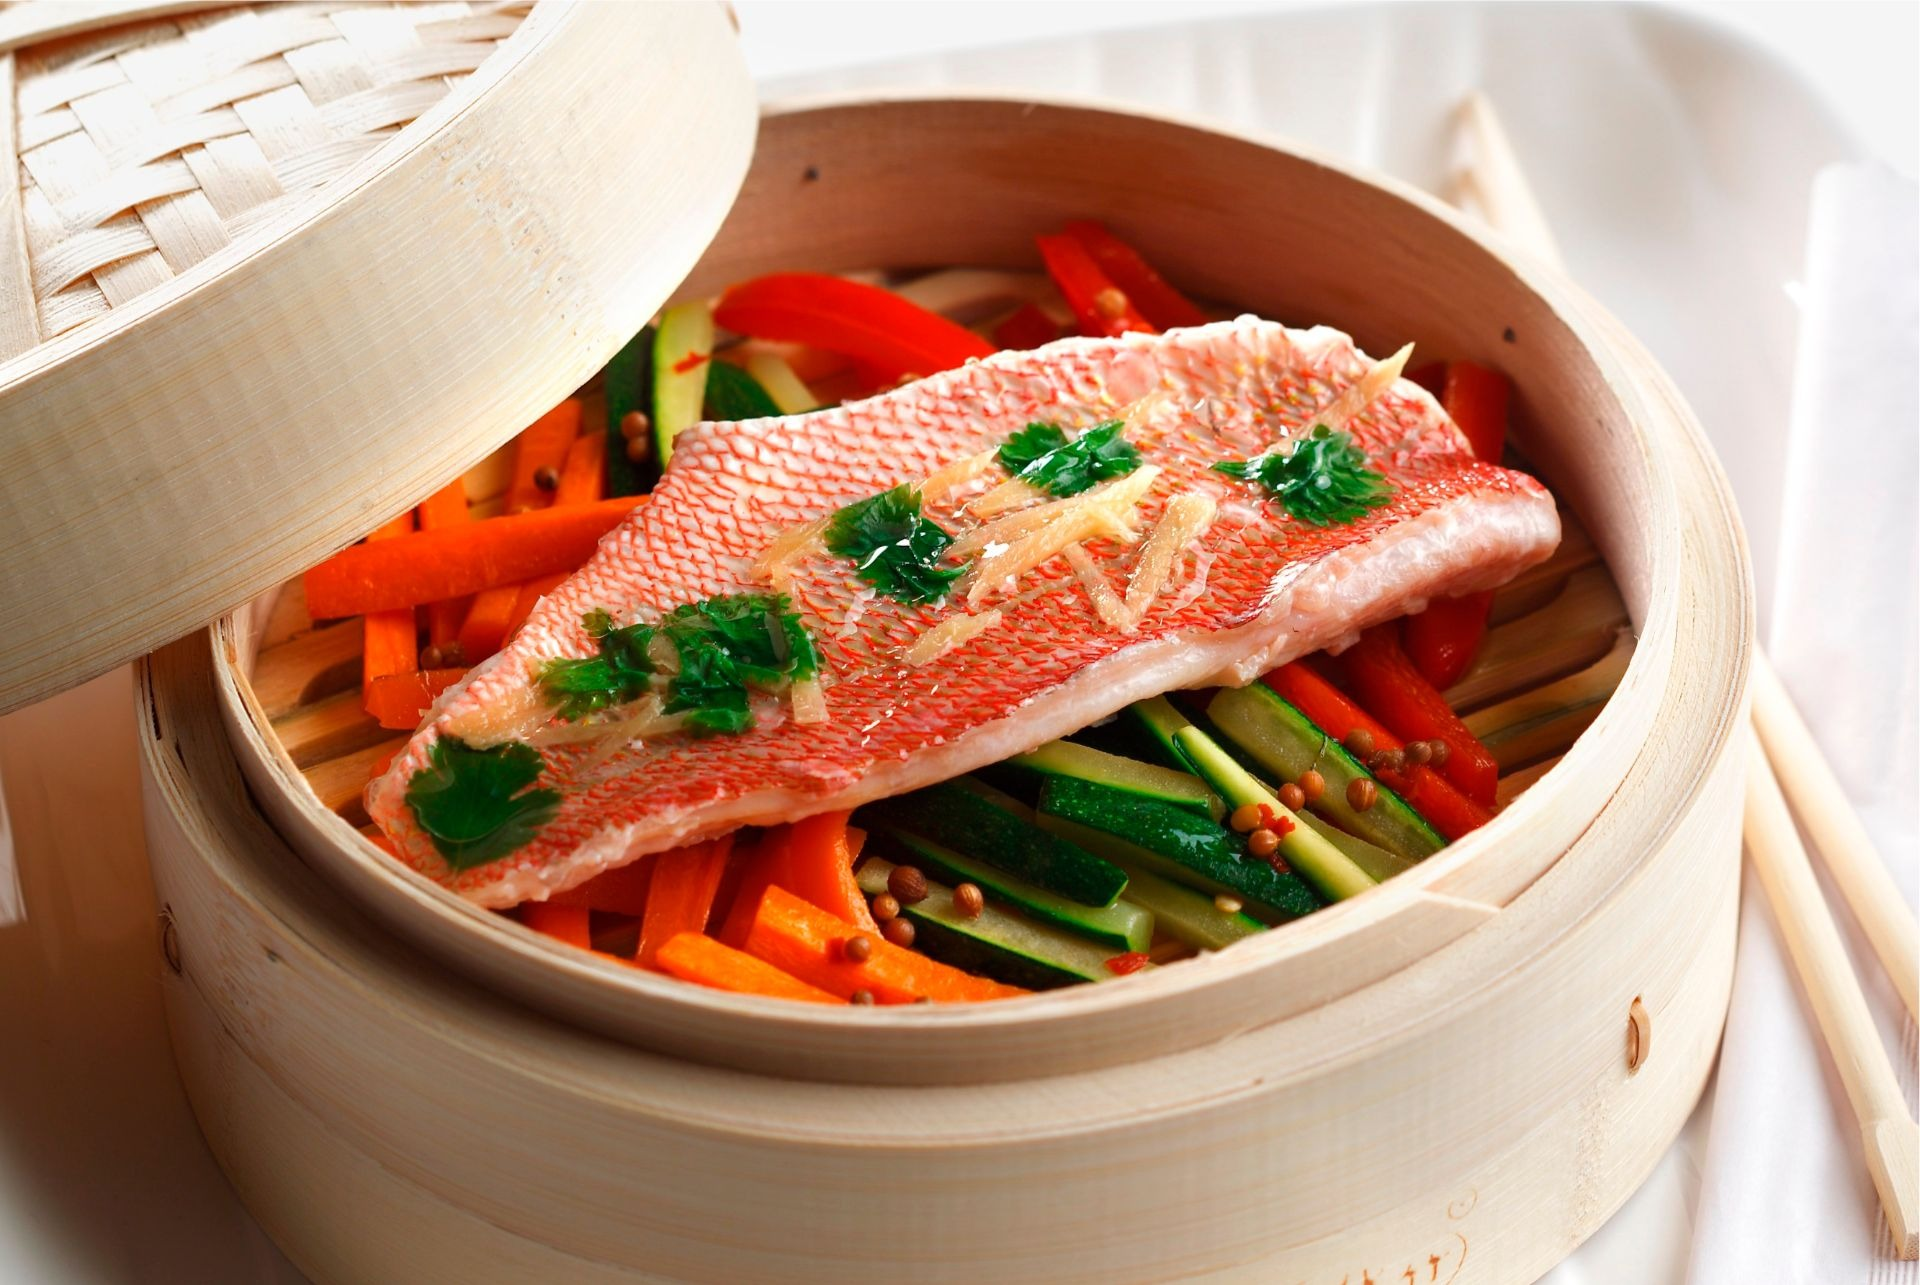 Snapper fillet resting on julliened zucchini, red pepper and carrots in a bamboo steamer